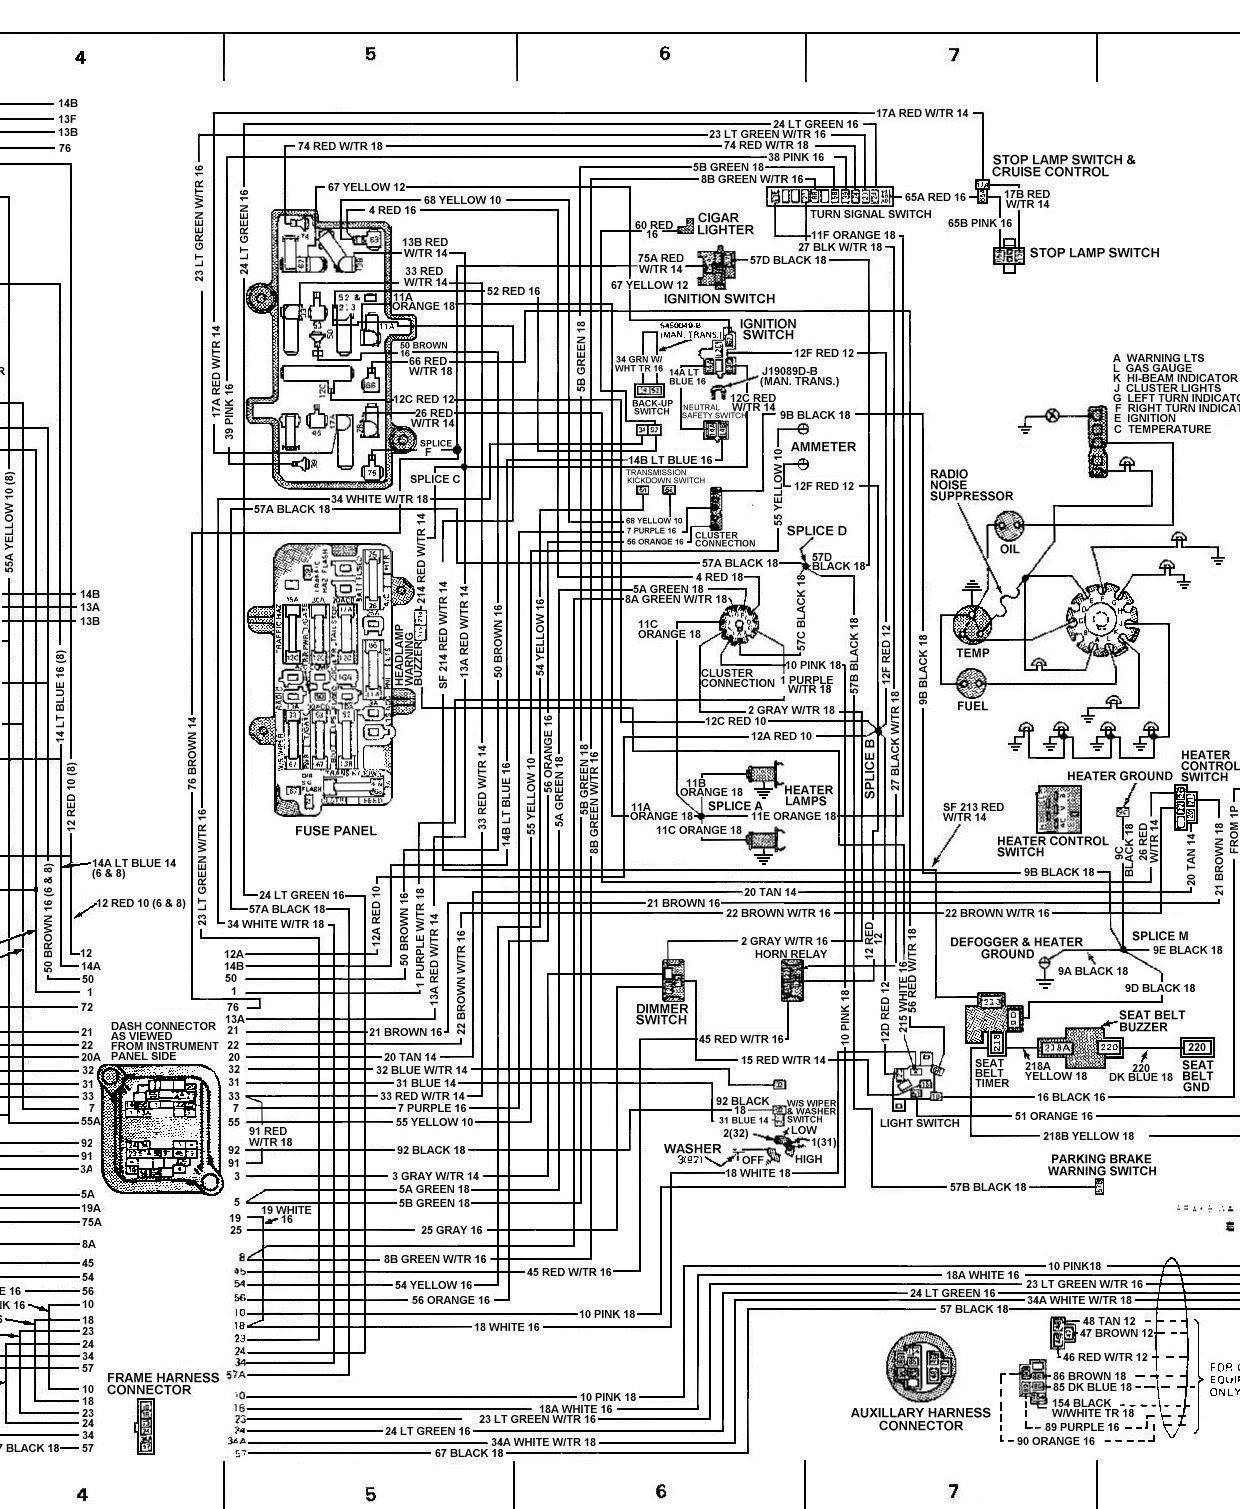 1976 Corvette Dash Wiring Diagram Noco Battery Isolator Chevy Diagrams / Schematics | Avalanche 2004 1500 Pinterest Honda Accord, Sedans And ...